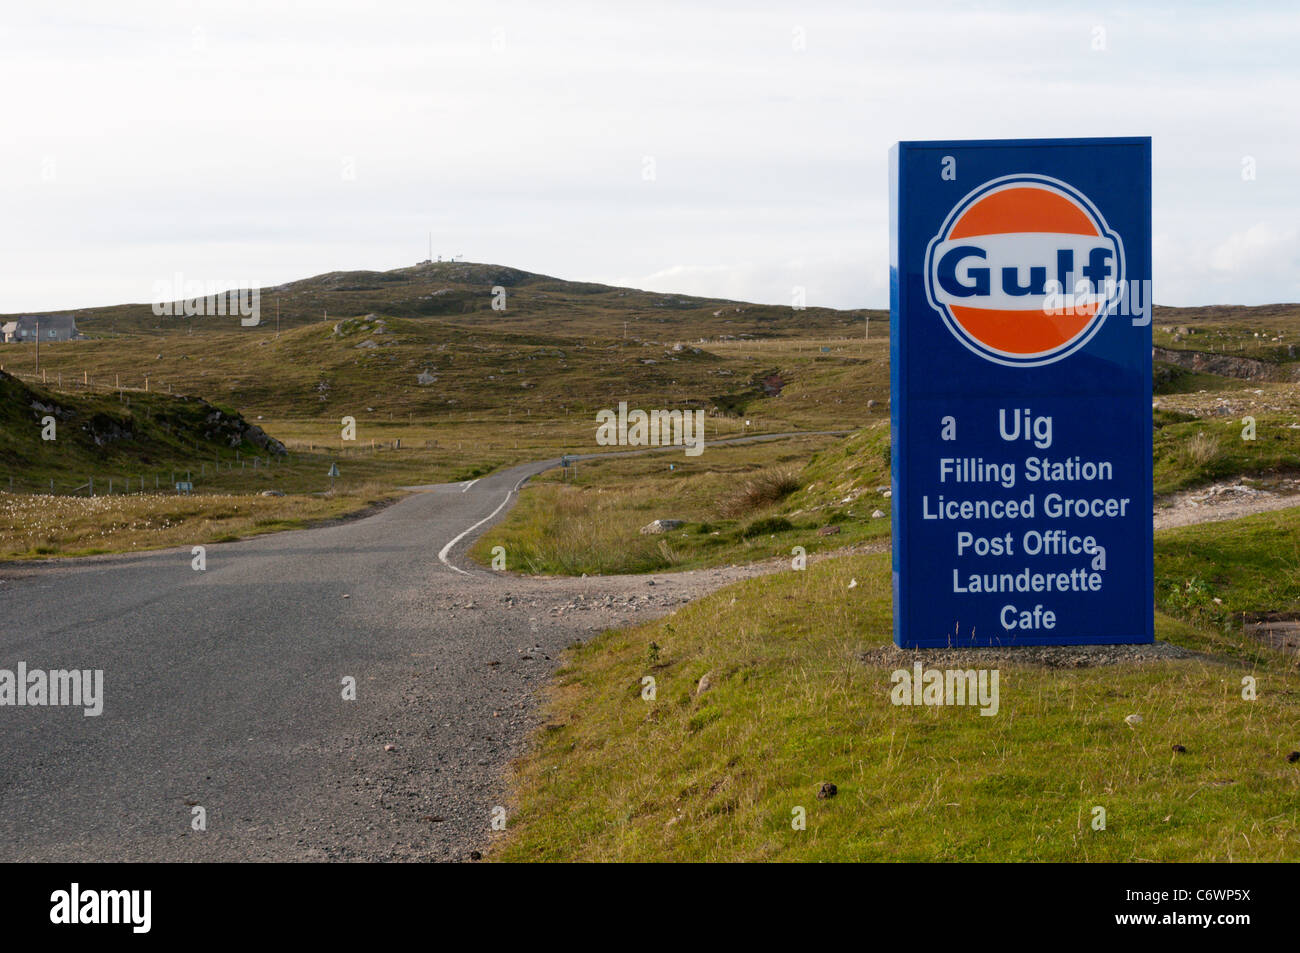 Sign for Uig Gulf filling station at Timsgearraidh on the Isle of Lewis, Outer Hebrides, Scotland - Stock Image